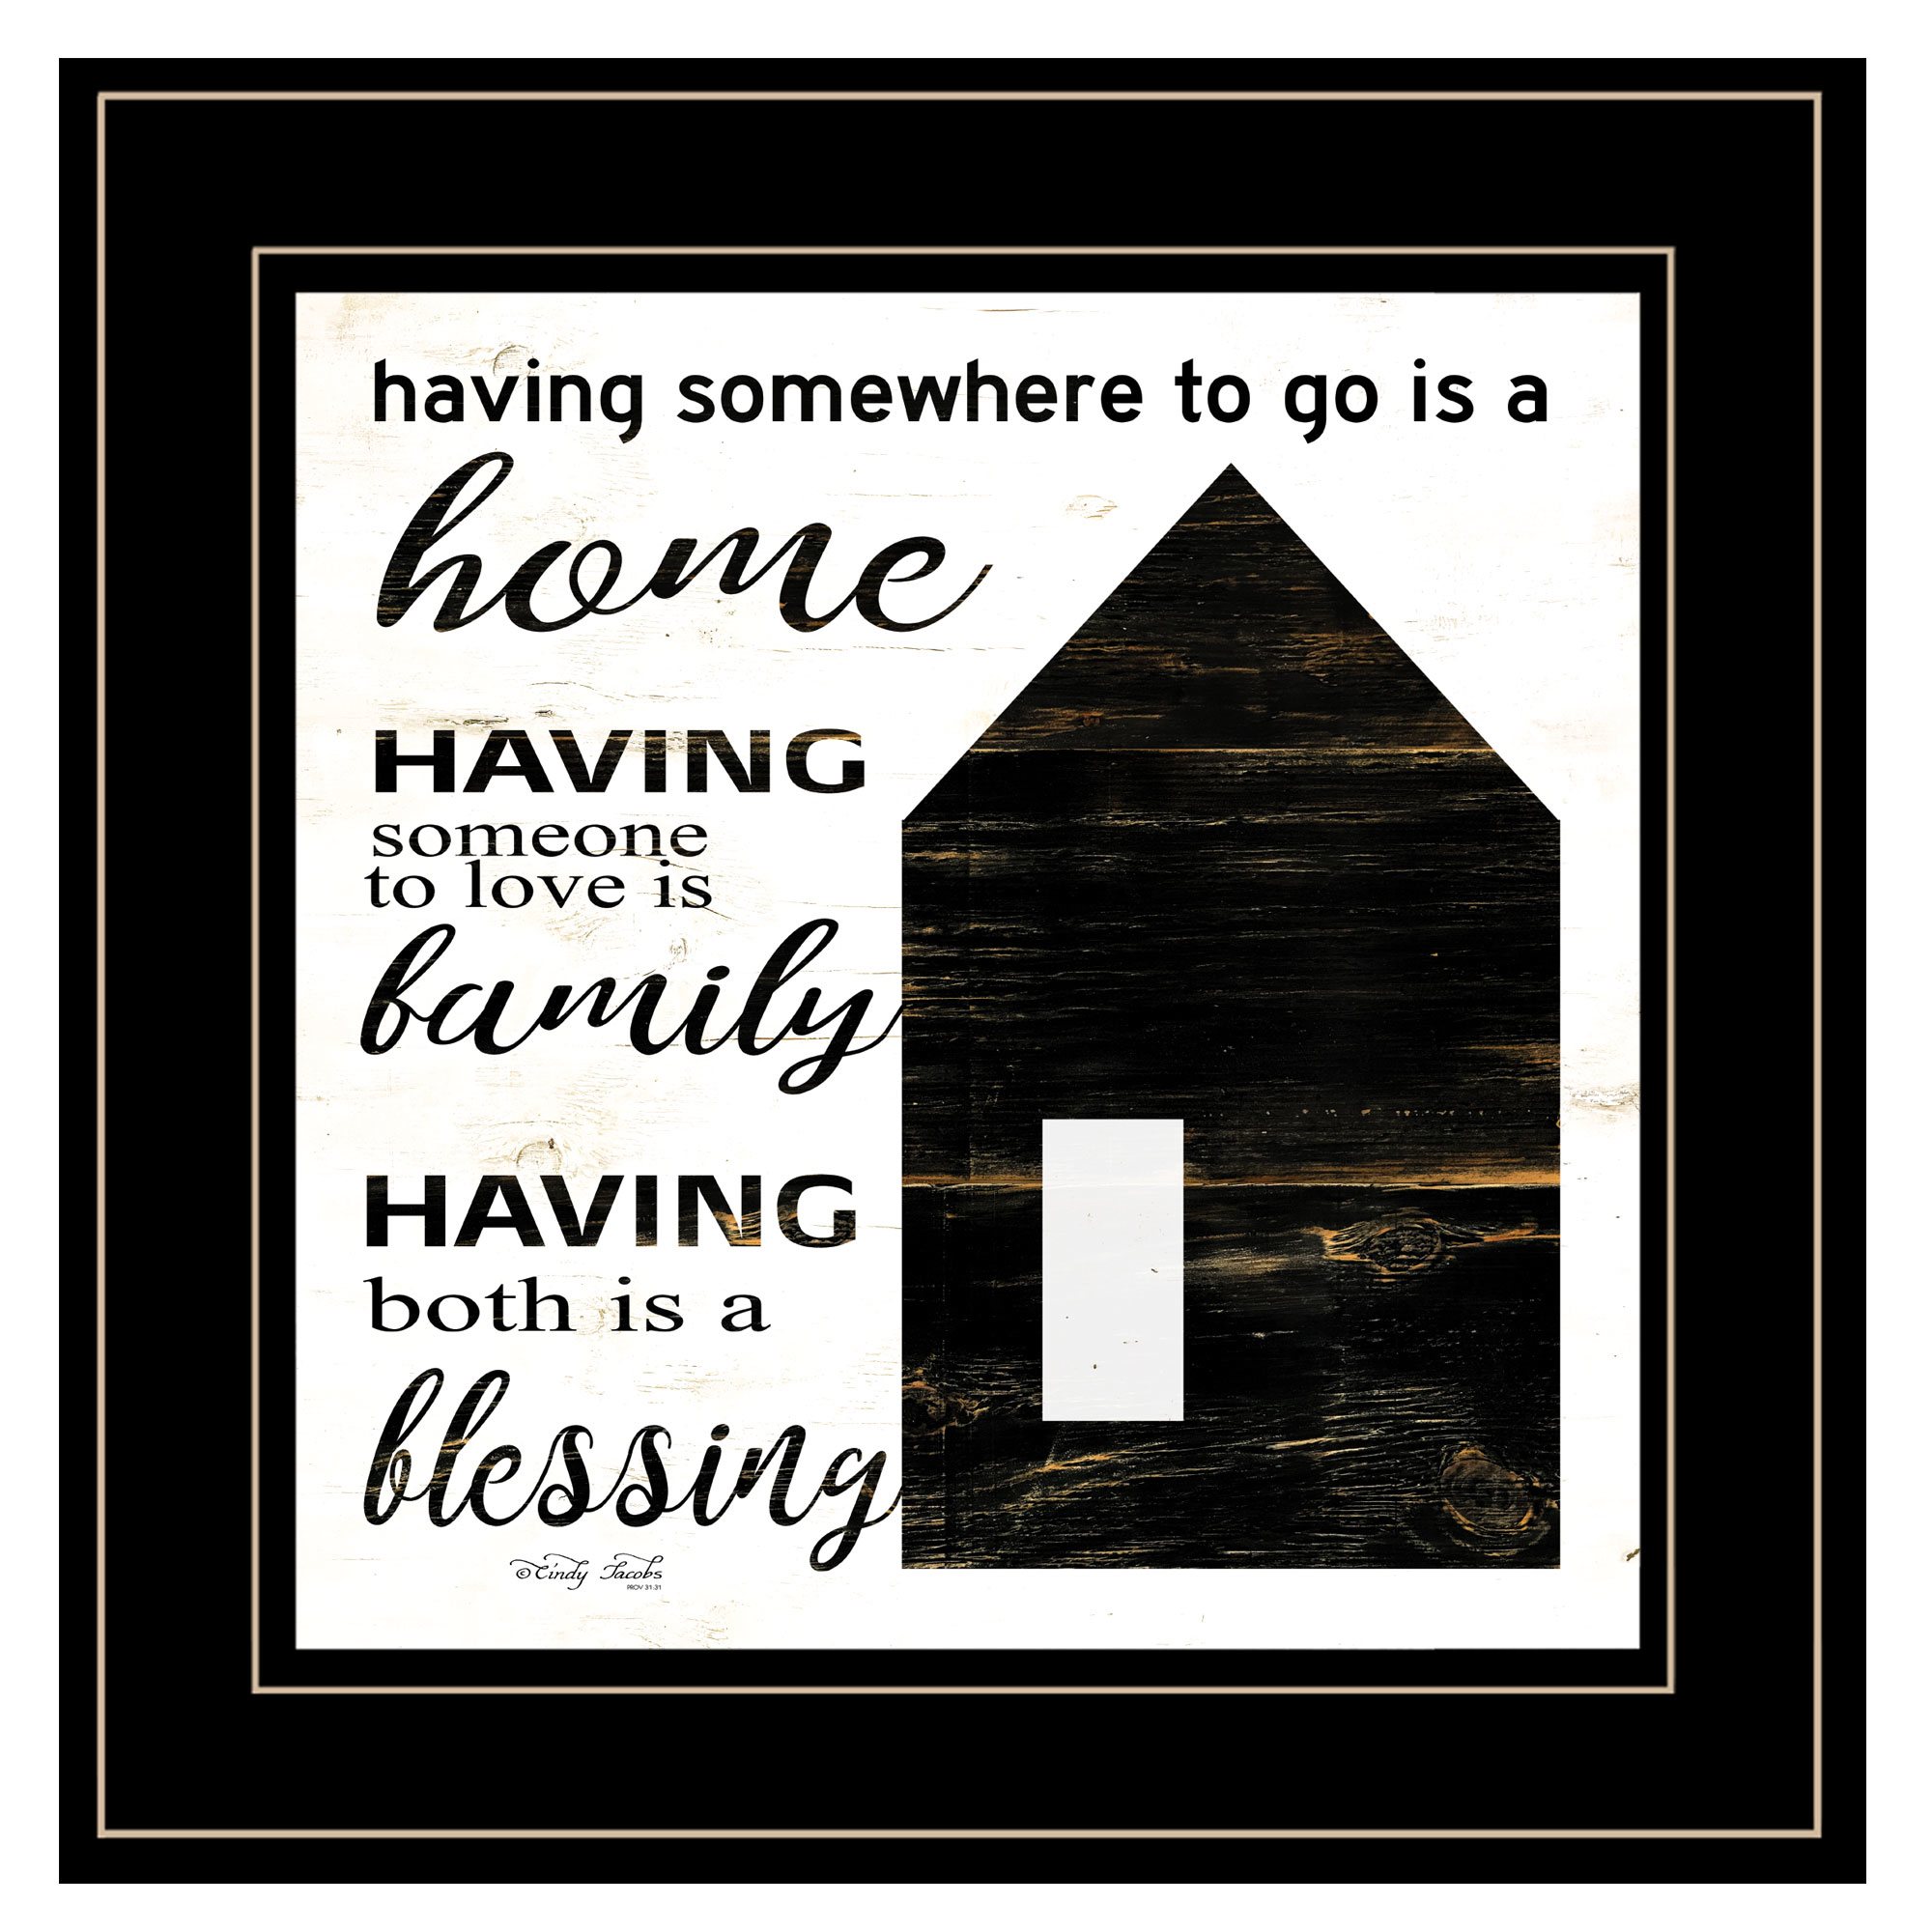 """A Blessing "" a wooden salt box house by artist Cindy Jacobs. This decorative black framed print 15""x15"" of a salt box house with script warms any home. Script: Having somewhere to go is a home; having someone to love is family; Having both is a blessing! Prints are UV coated (glass is not needed) and arrives ready to hang. Textured Artwork with a 'rolled on' acid-free acrylic coating to create a canvas painting effect. UV Protectant Coating protects artwork from fading. No glass is necessary. Moulding adds natural beauty to the framed art. Frame is keyholed for the easy hanging. This Fine Home Decor piece made in the USA by Woman Owned Business (Wbe) is a perfect gift??for a friend or relative."